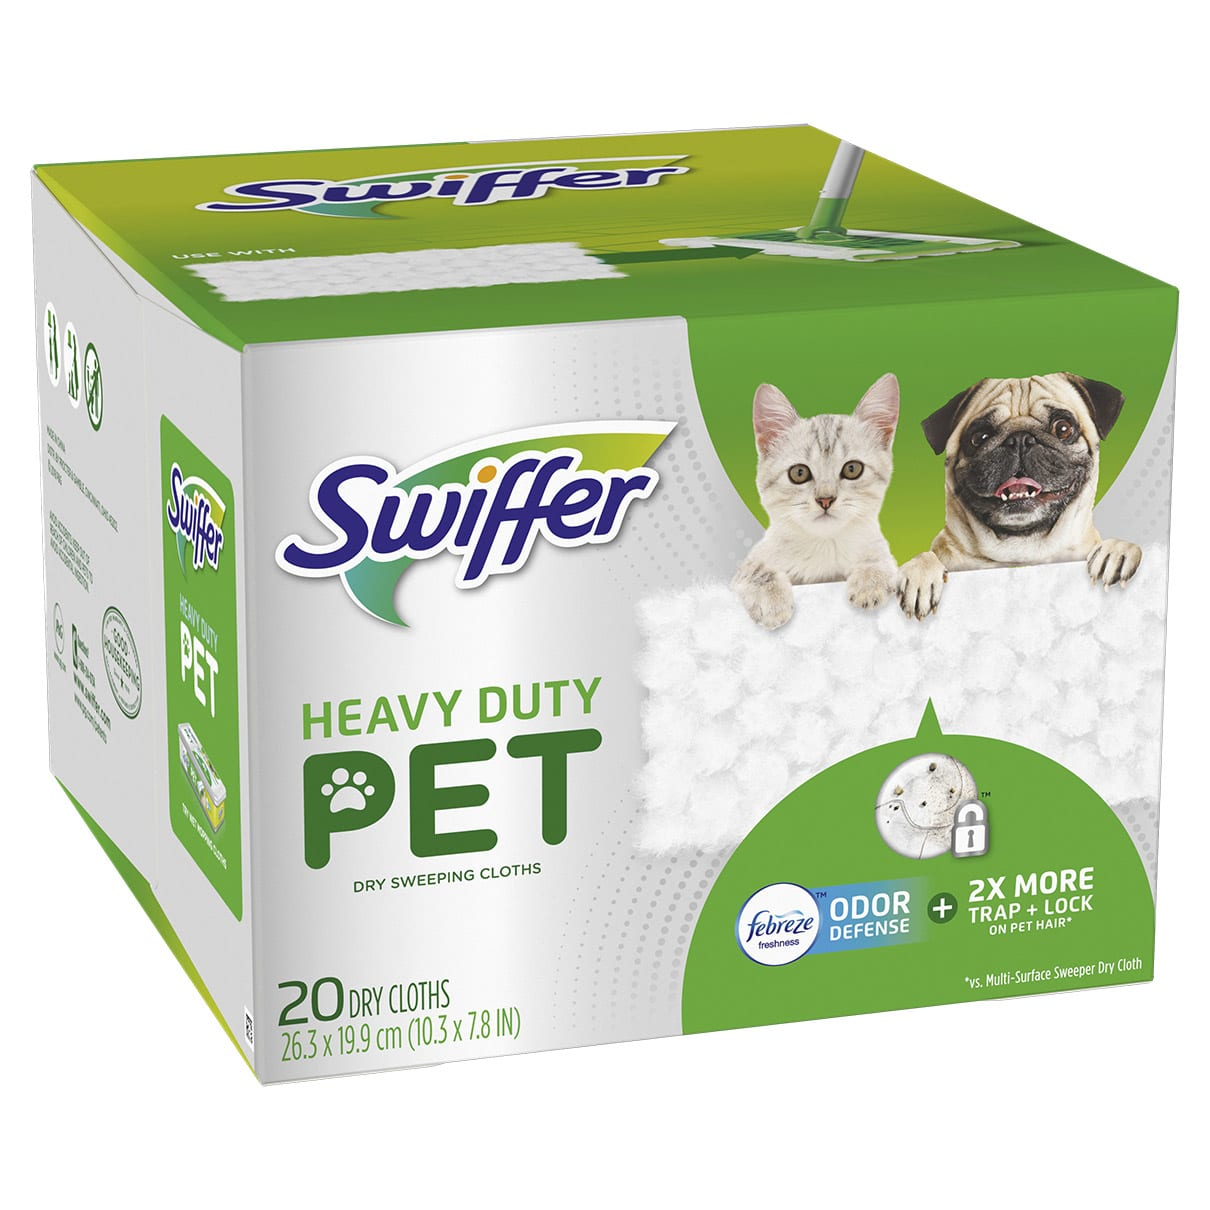 Swiffer Heavy Duty Pet Dry Sweeping Cloth Refills with Febreze Odor Defense